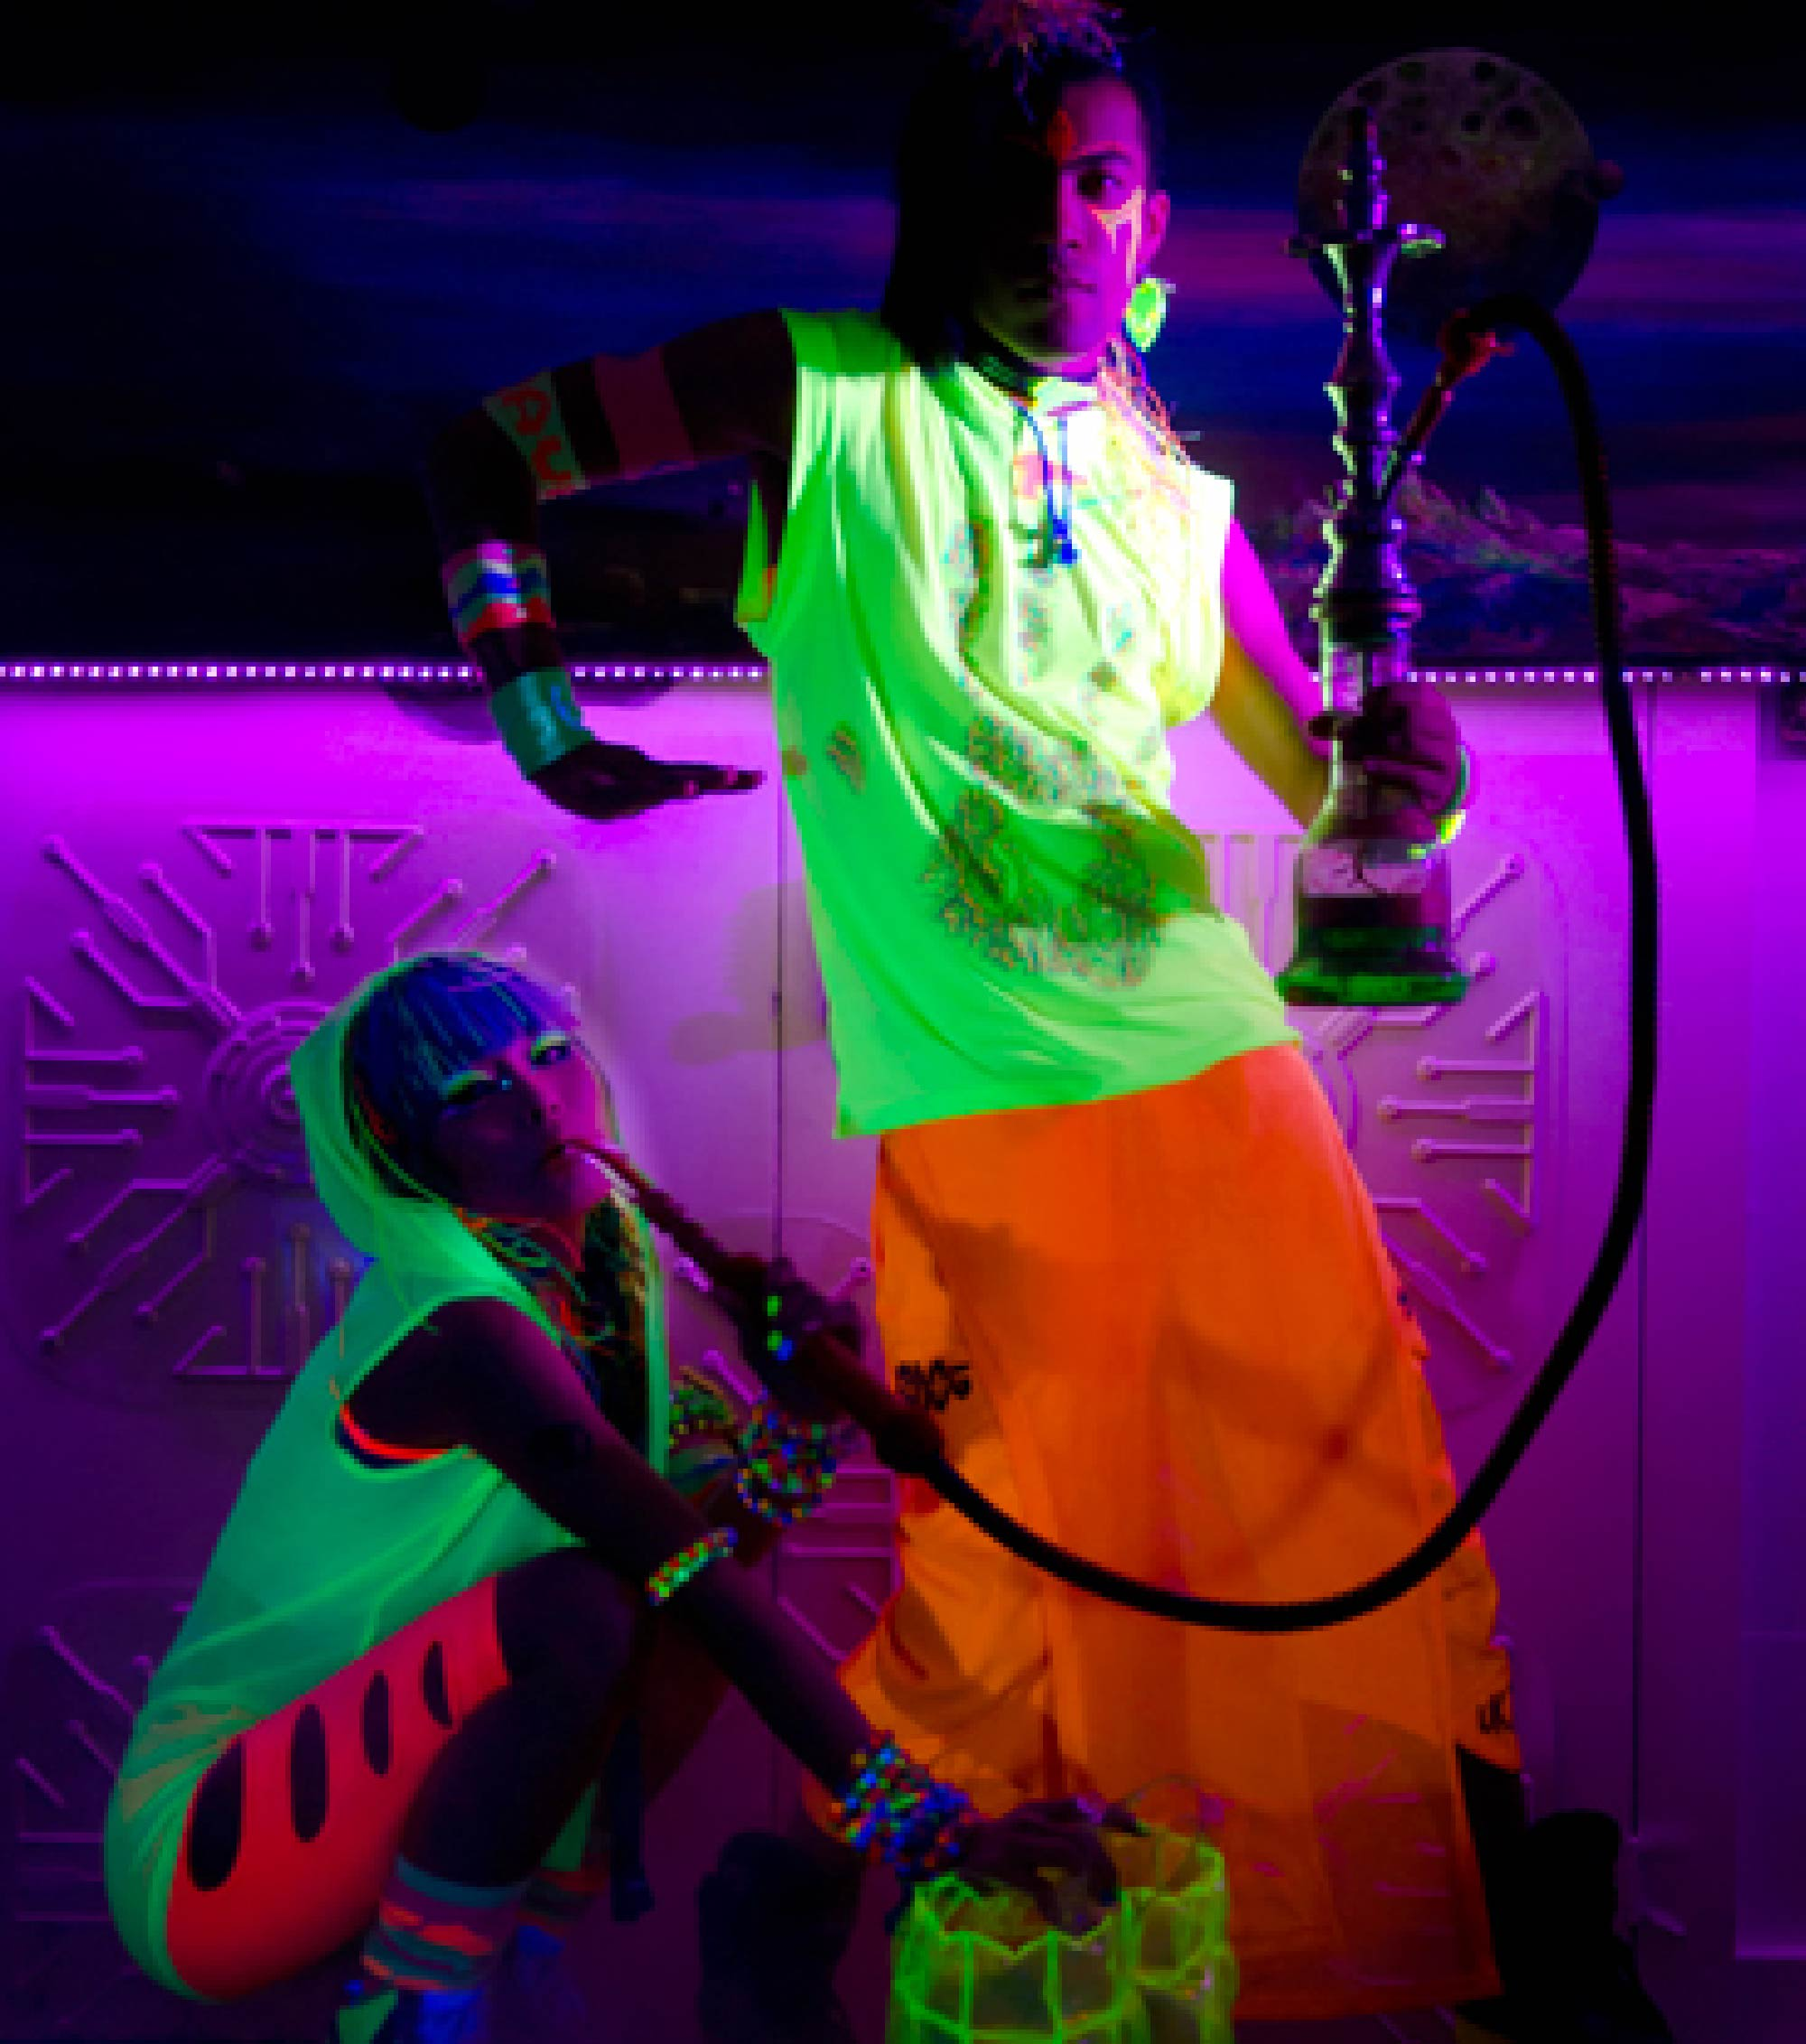 Makeup for London music video. Man with fluorescent clothes and paint poses under a blacklight (2).